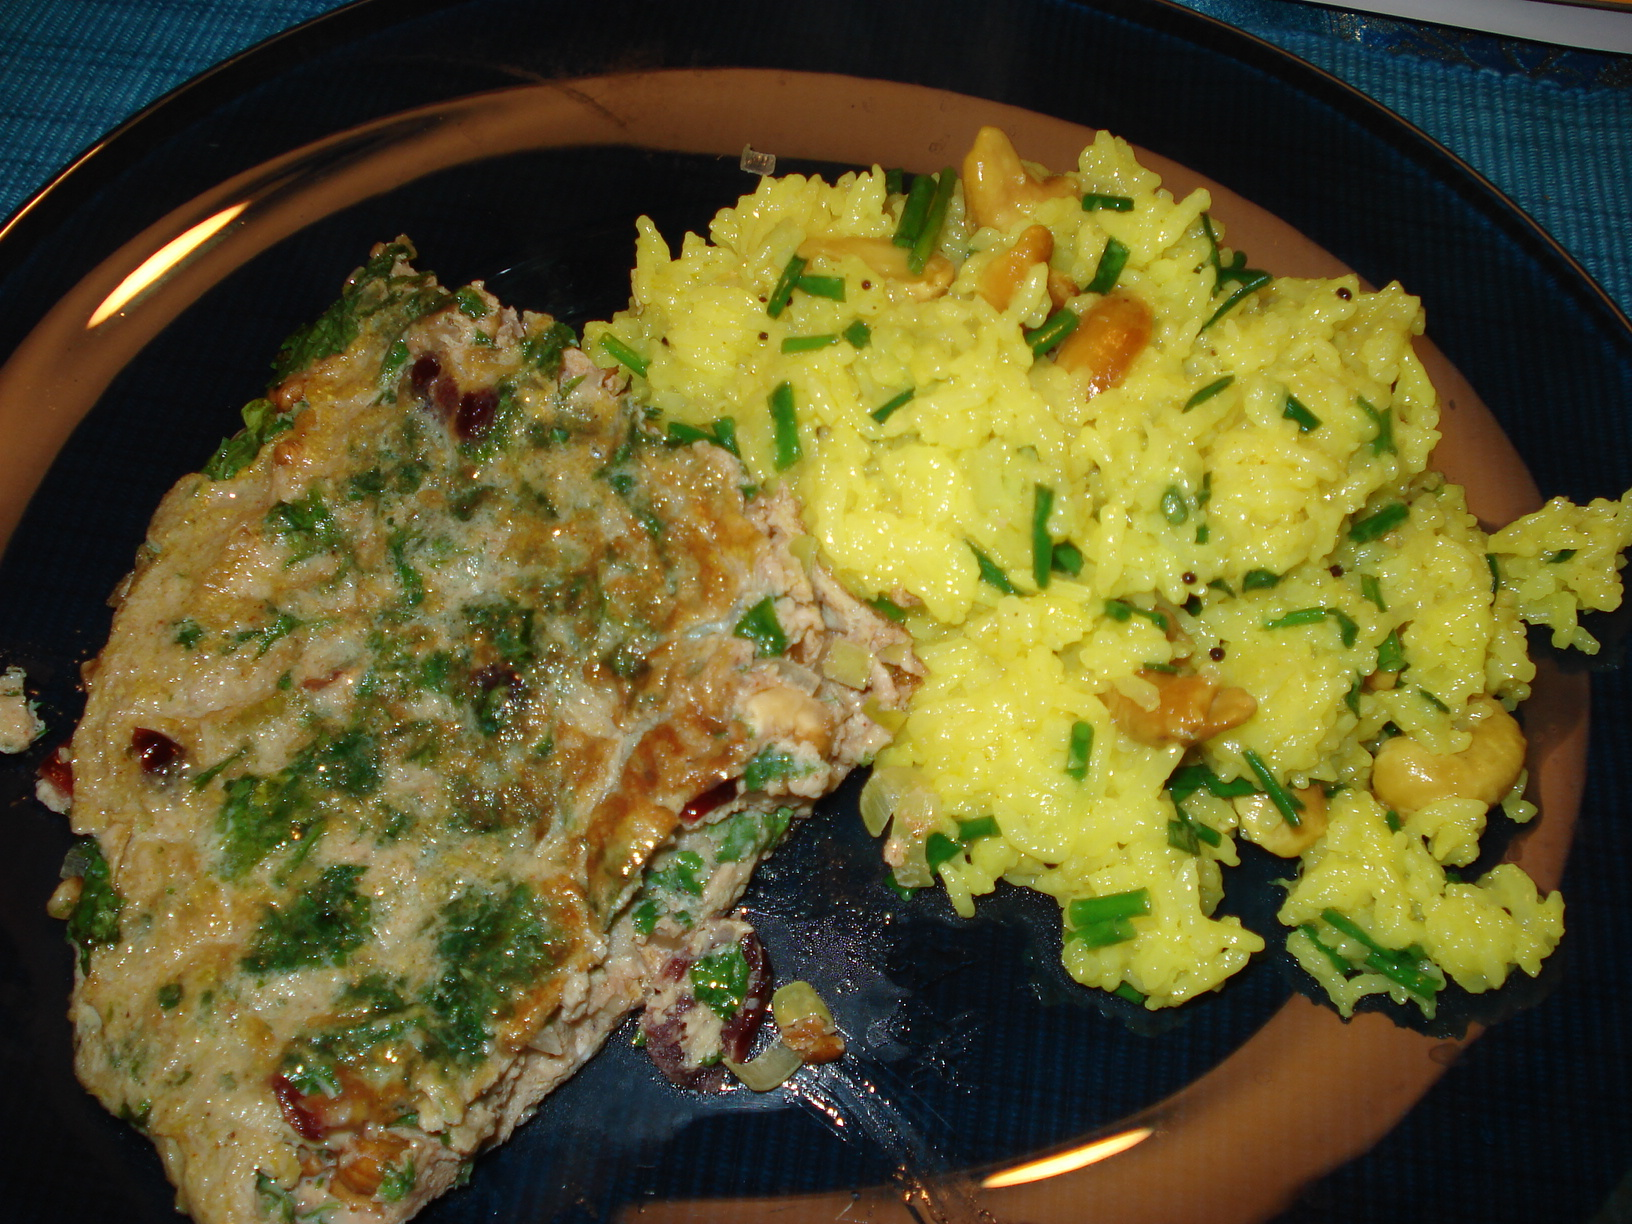 Herb omelette with lemon basmati rice